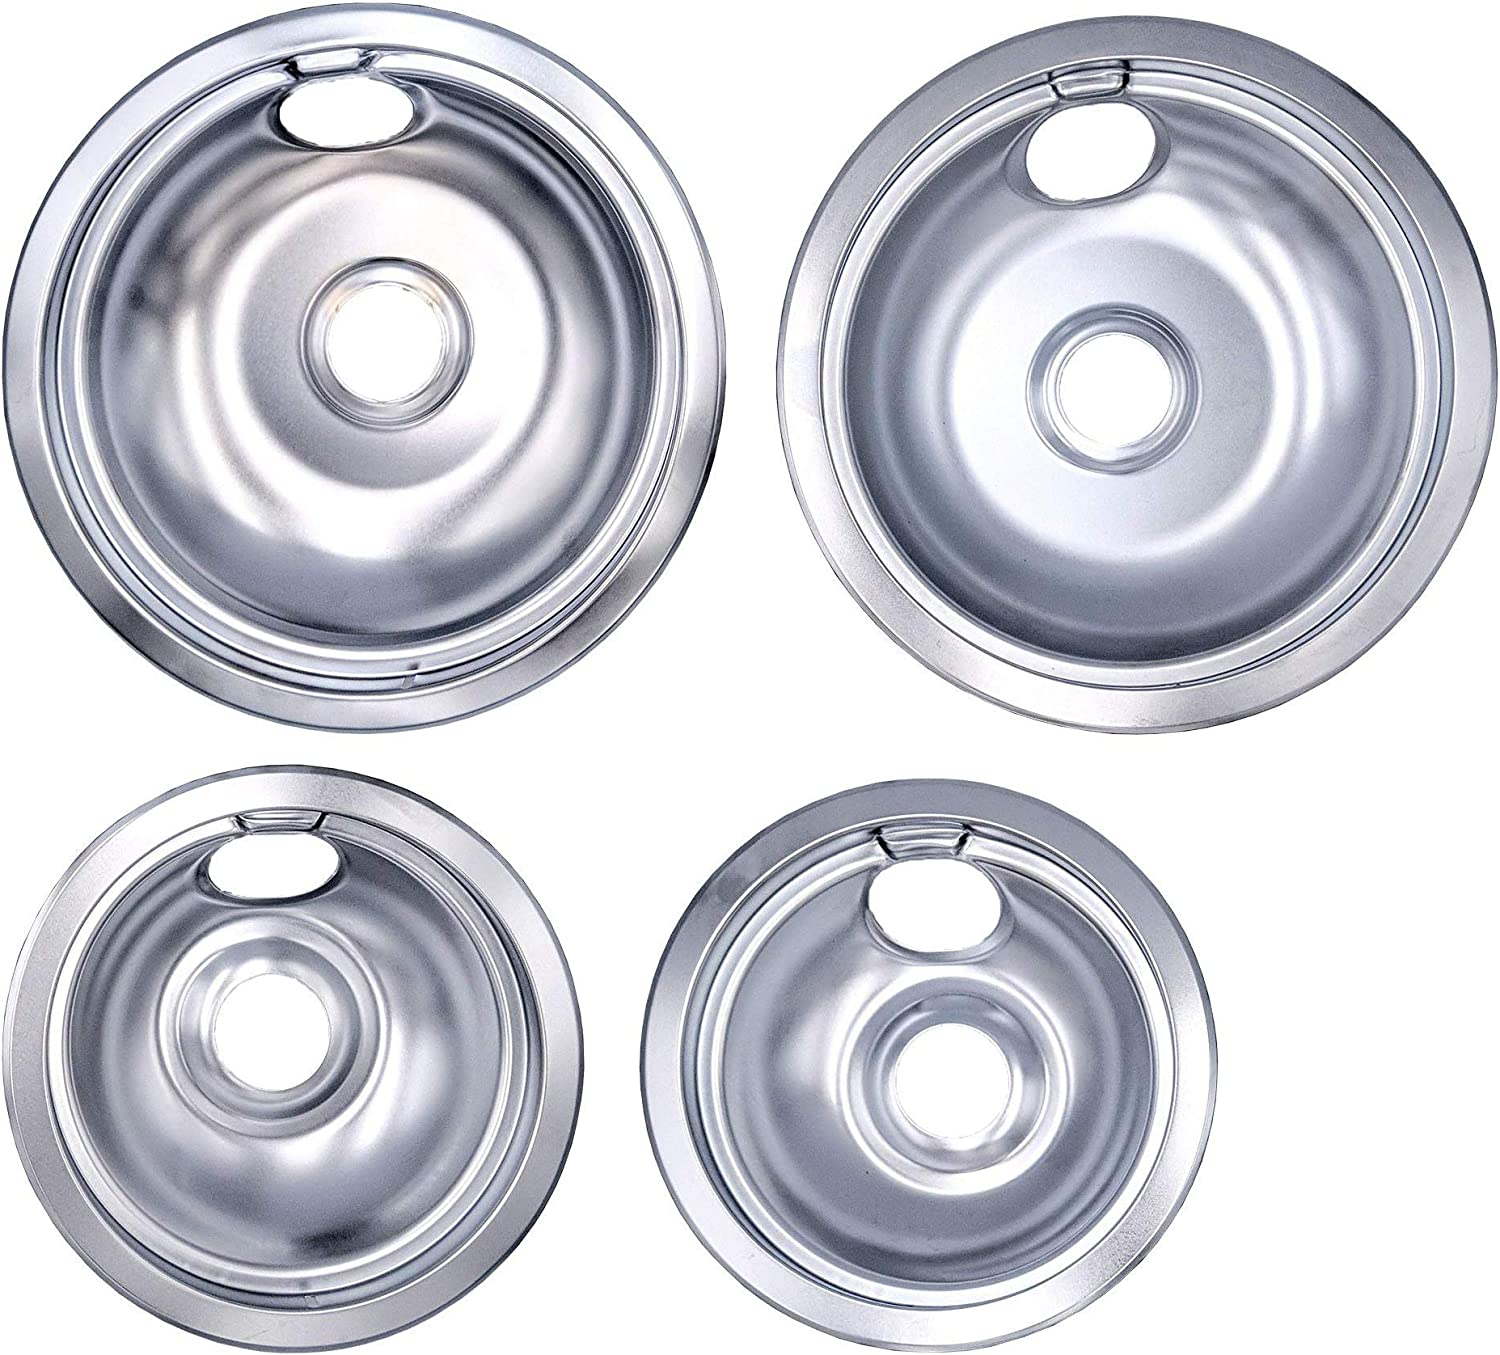 Supplying Demand 316048413 316048414 Chrome Drip Pan 4 Piece Set Compatible with Frigidaire (2) 6 Inch & (2) 8 Inch